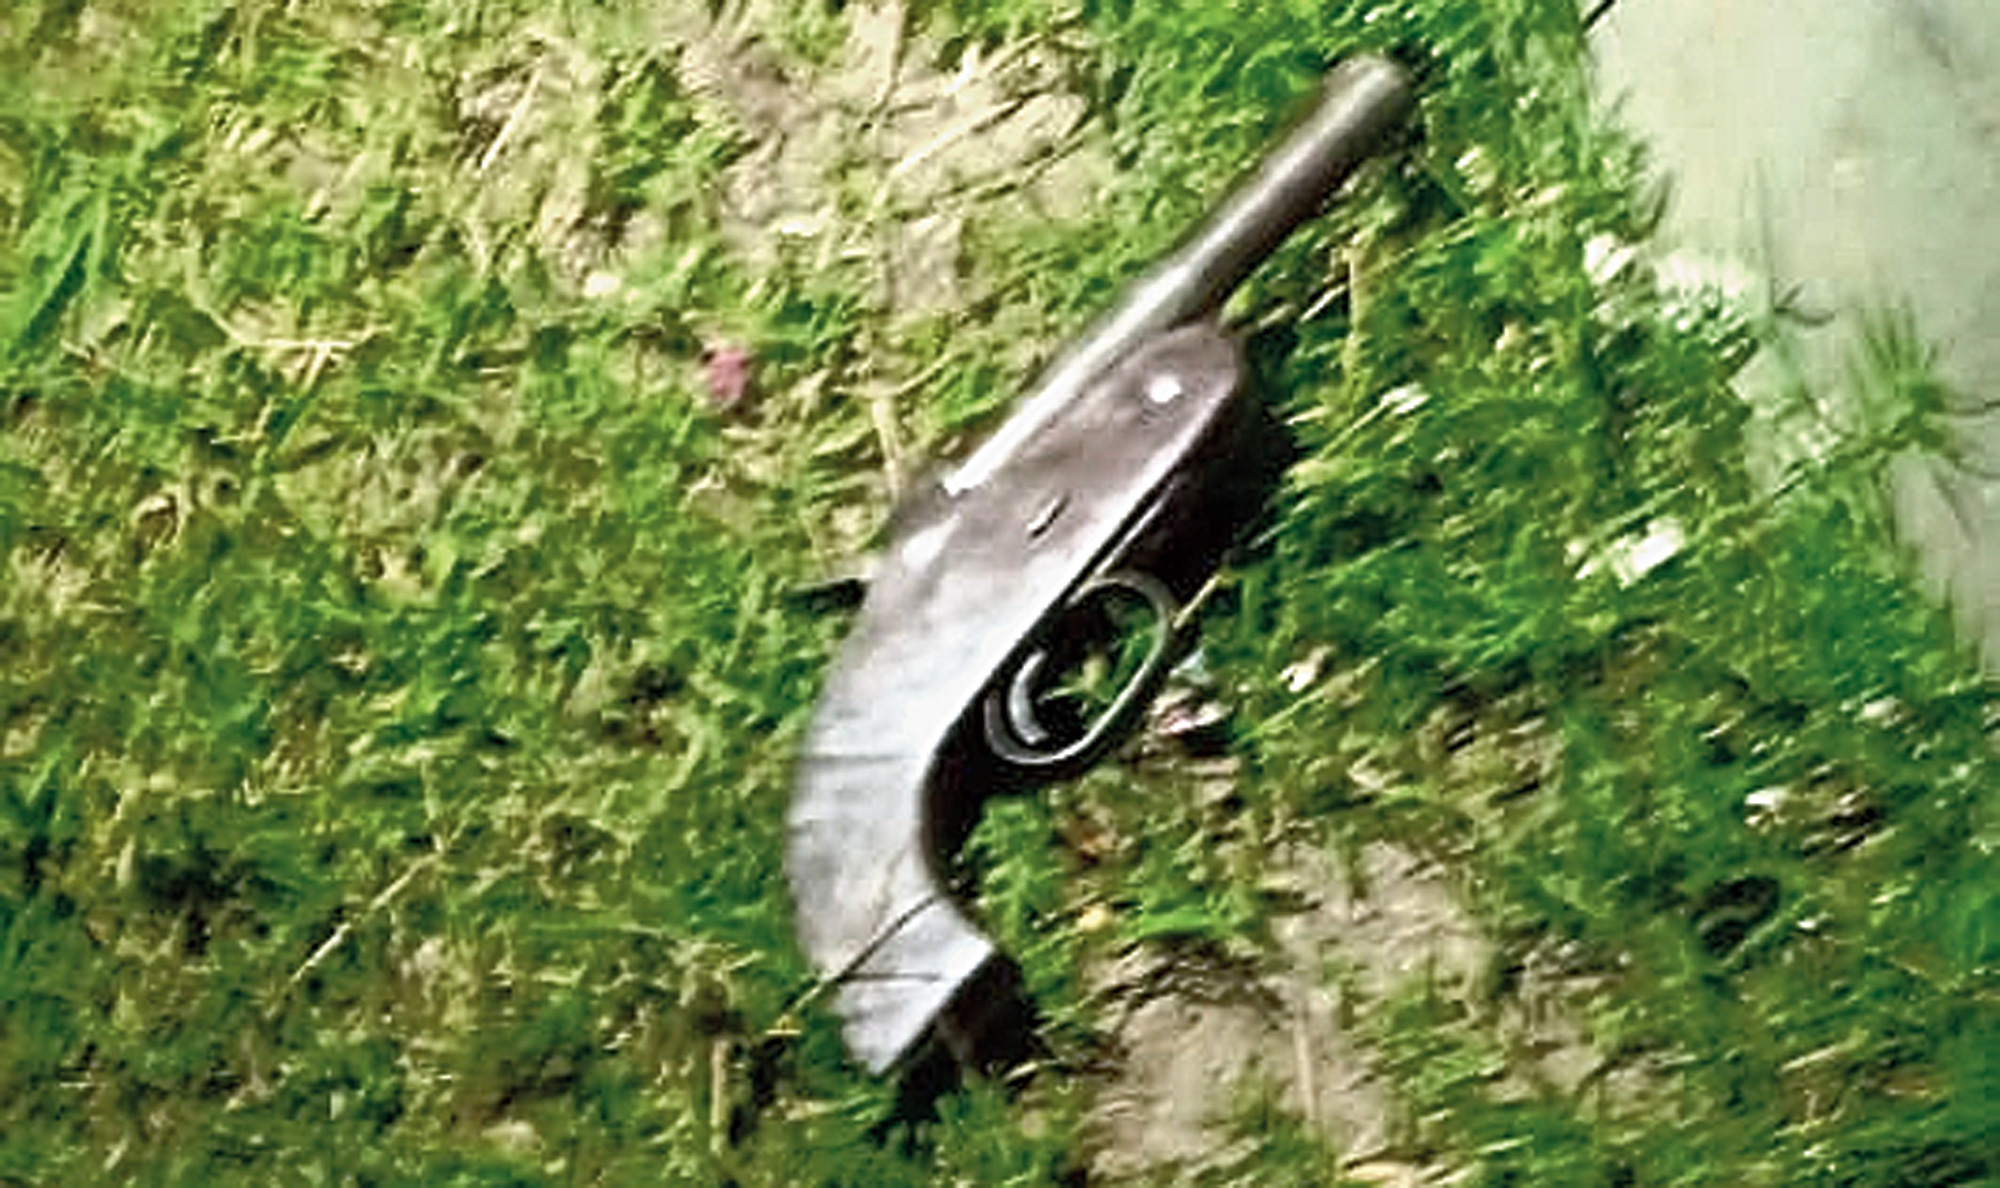 A firearm found near the murder site.